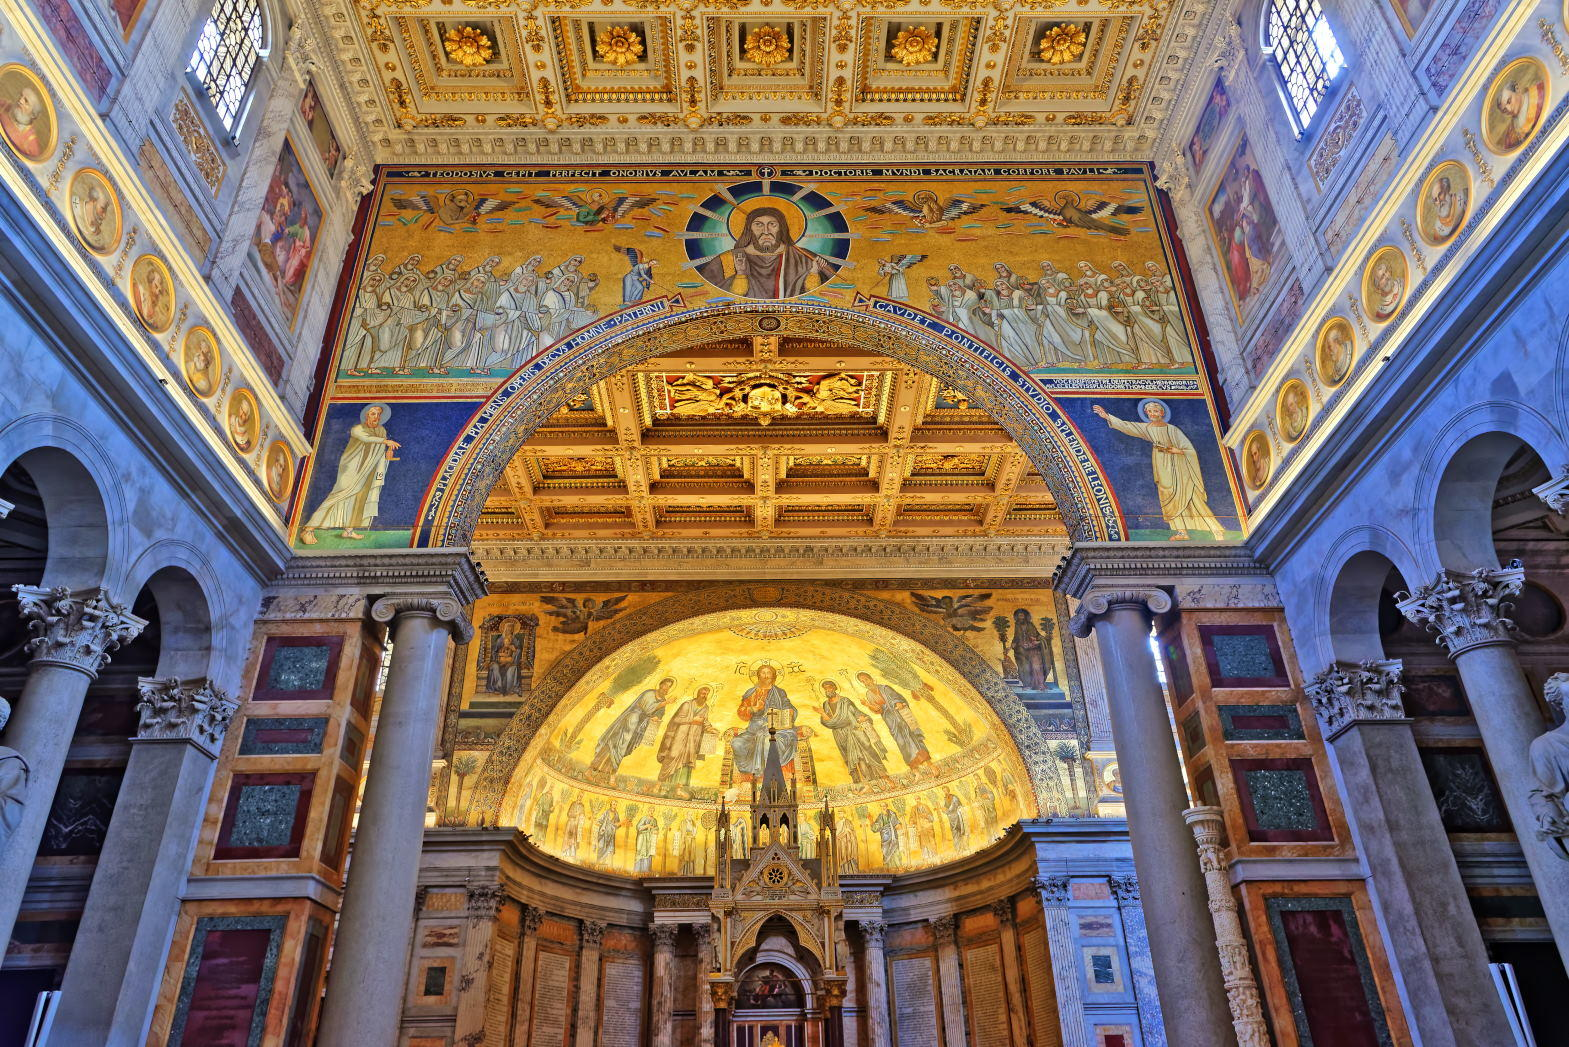 Basilica of Saint Paul Outside the Walls. Famous apse mosaic of Jesus Christ Pantokrator.